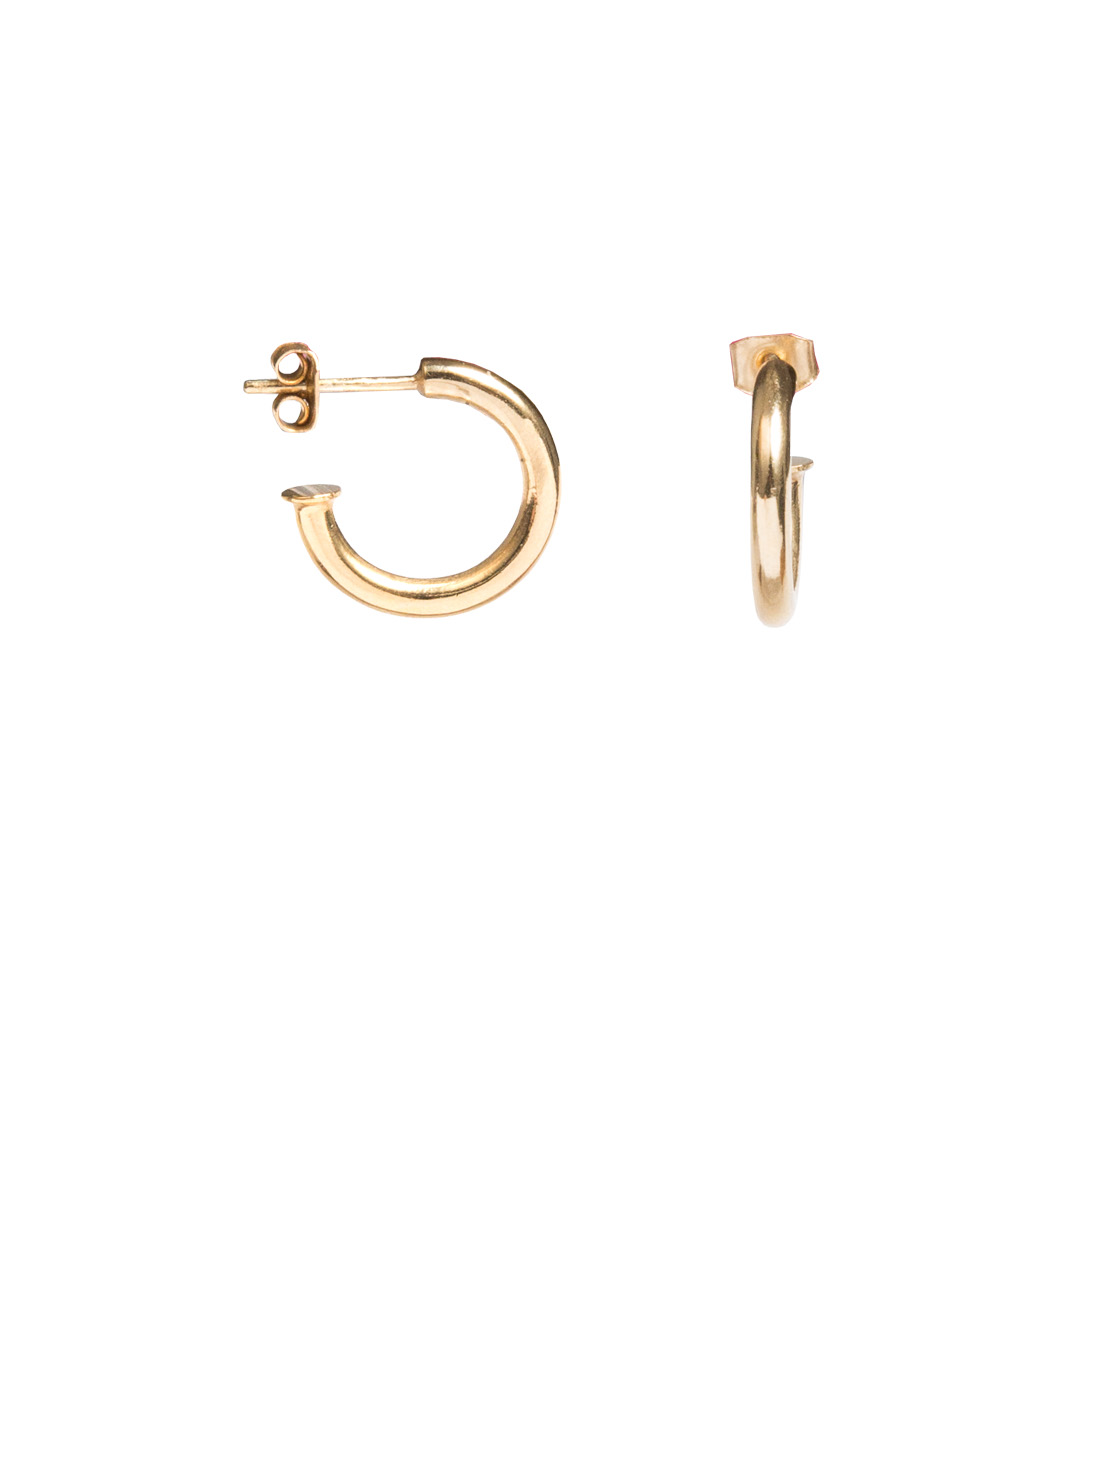 2630f5281 Small Gold Hoop Earrings - Tilly Sveaas Jewellery